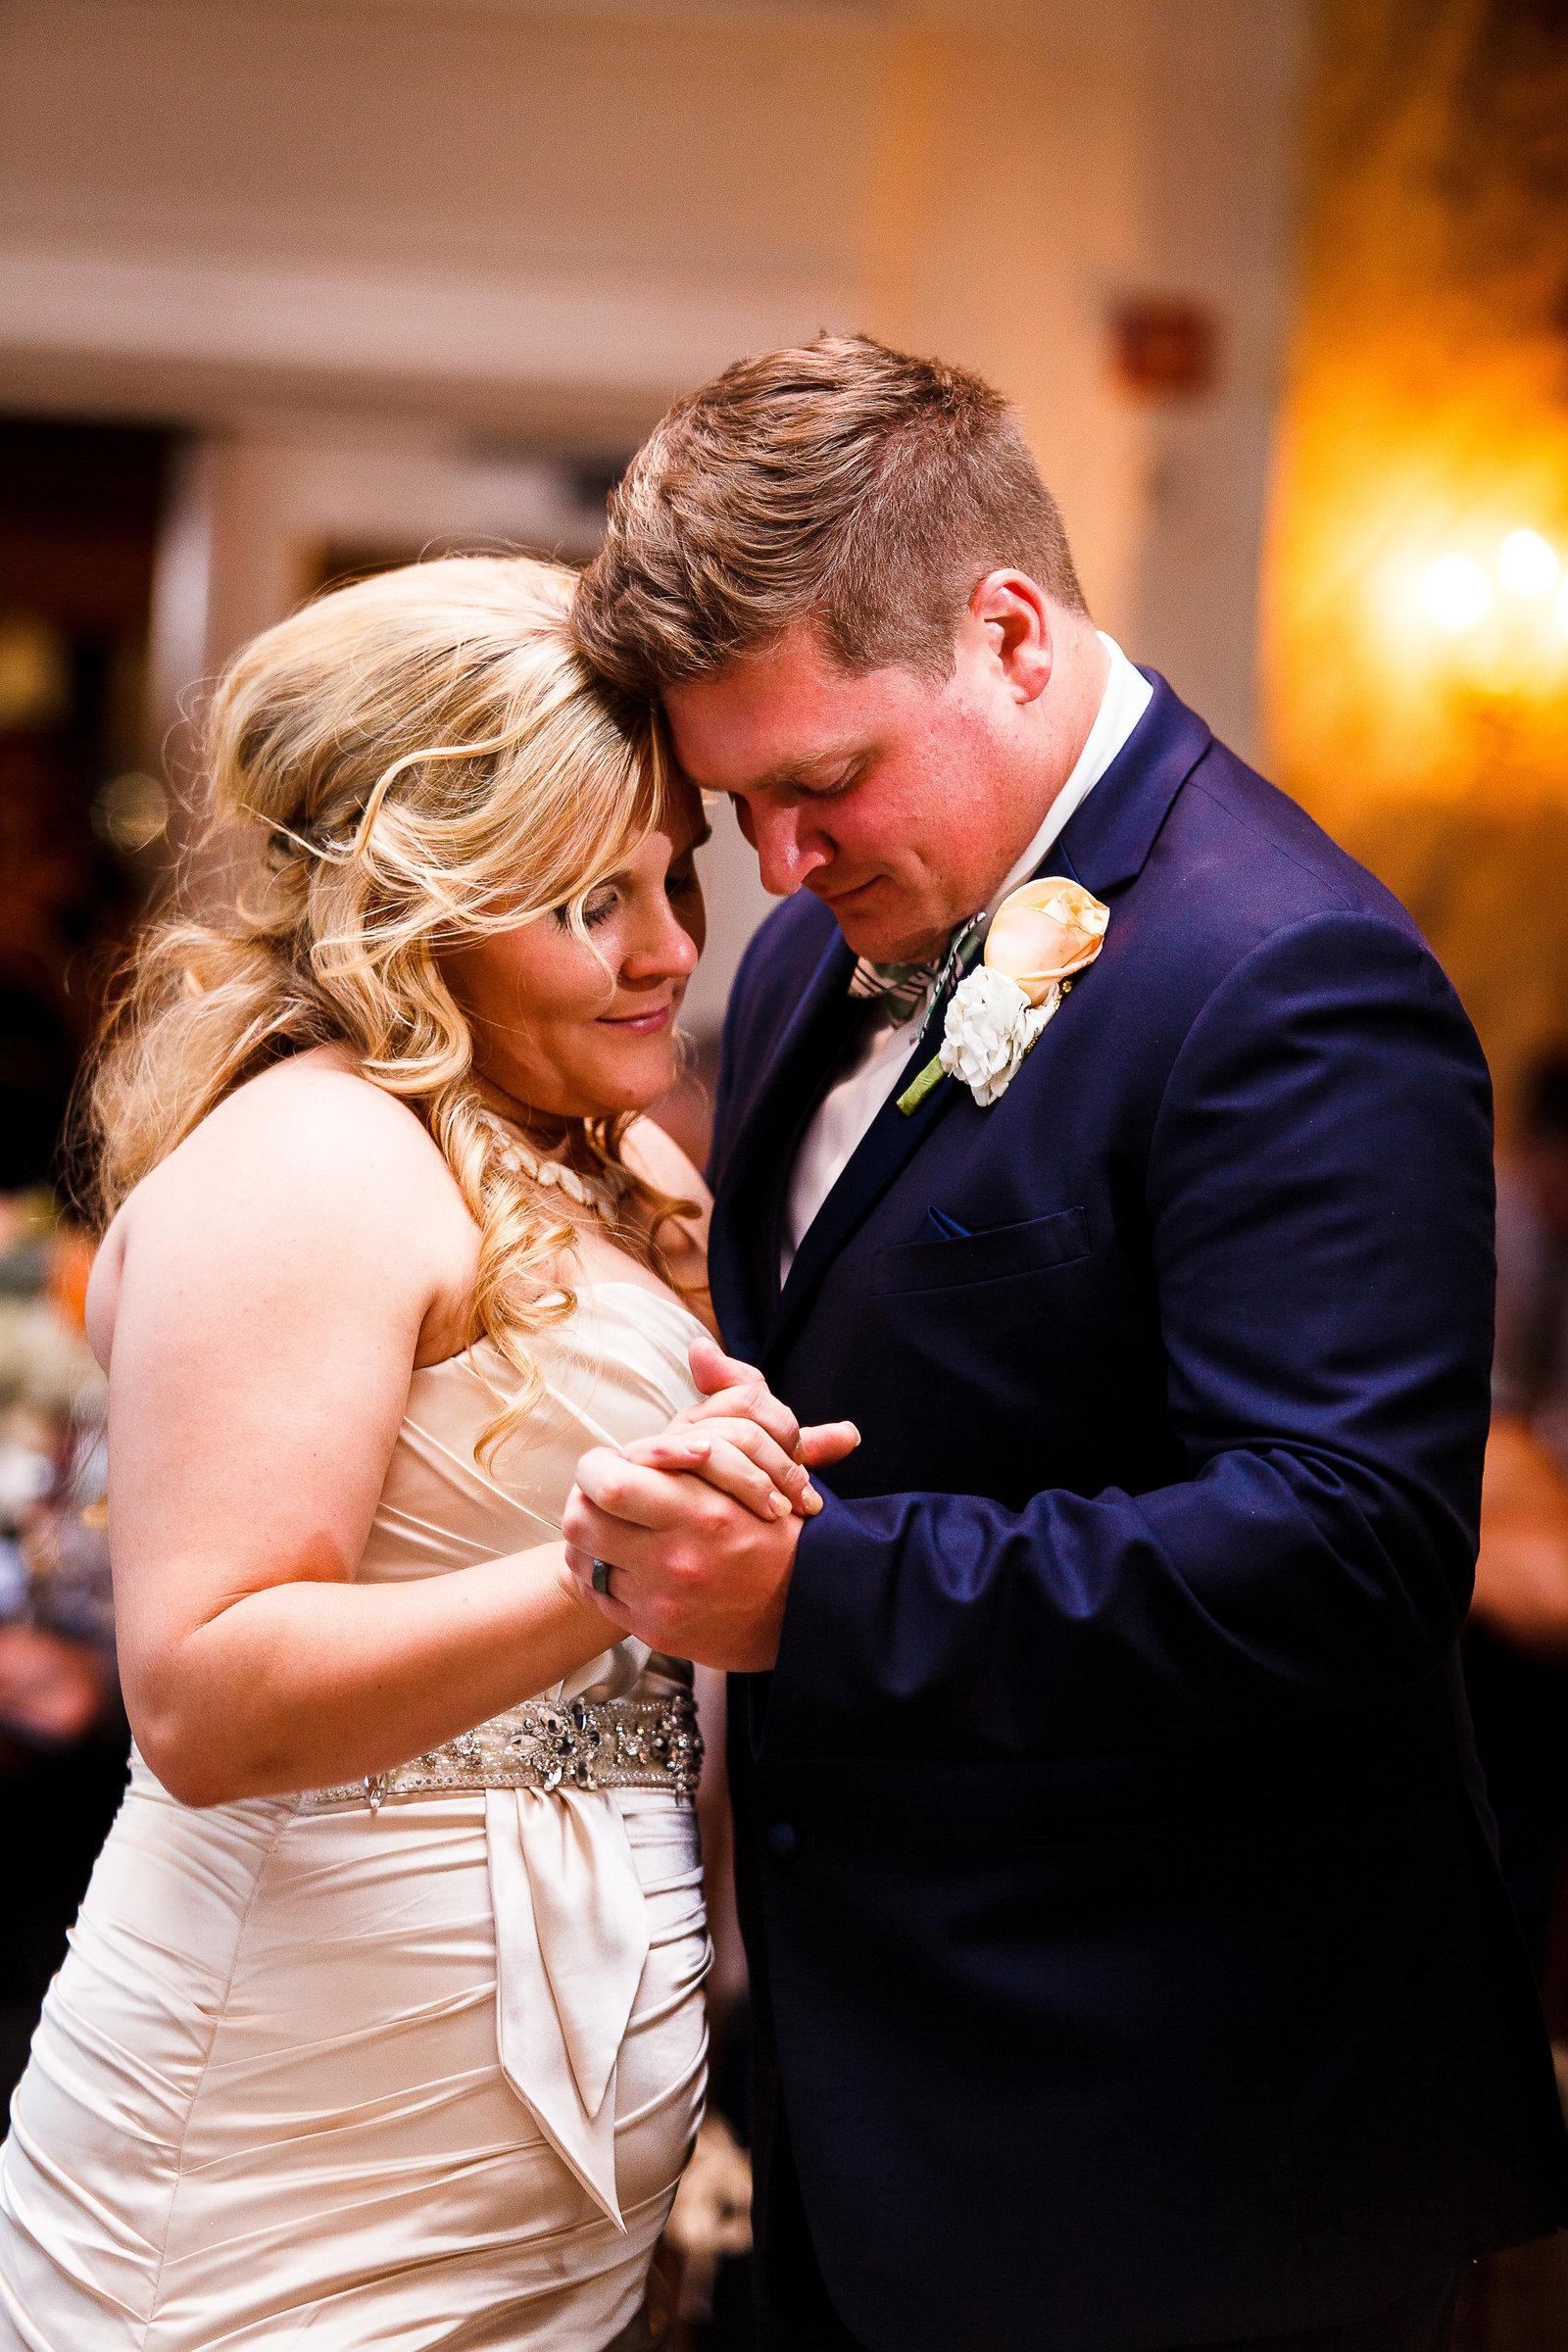 rachel-richard-photography-wedding-engagement-70